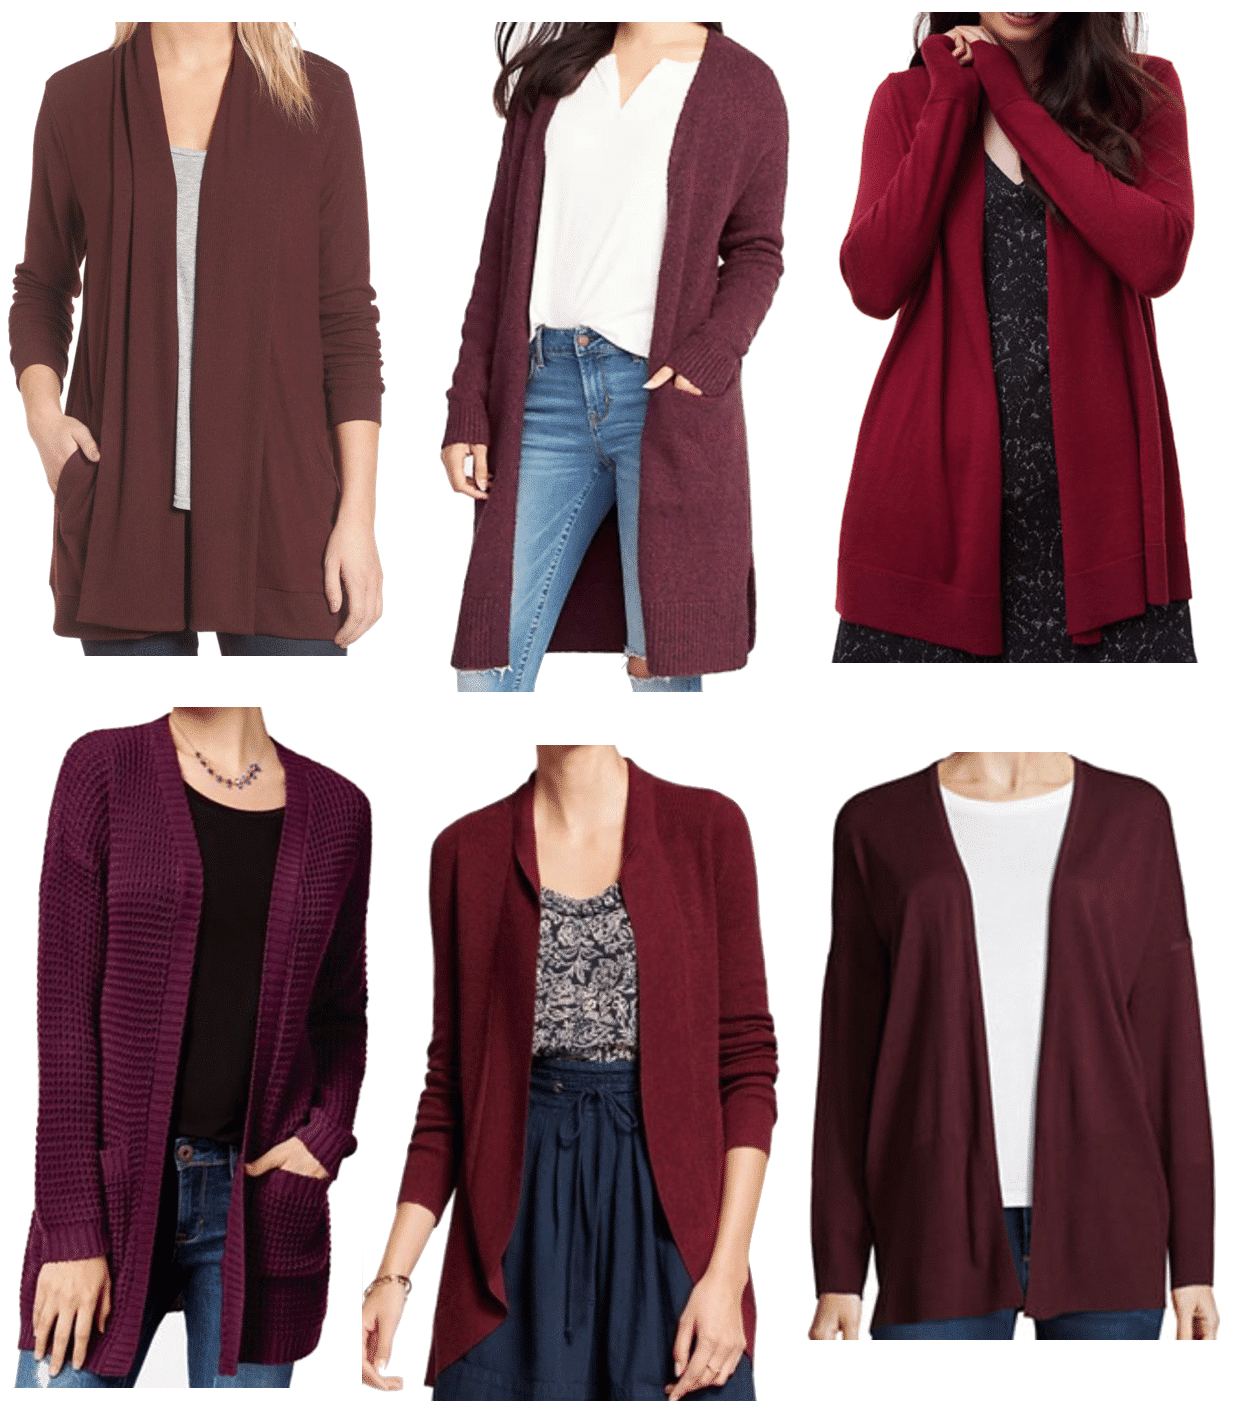 Maroon Cardigan Options